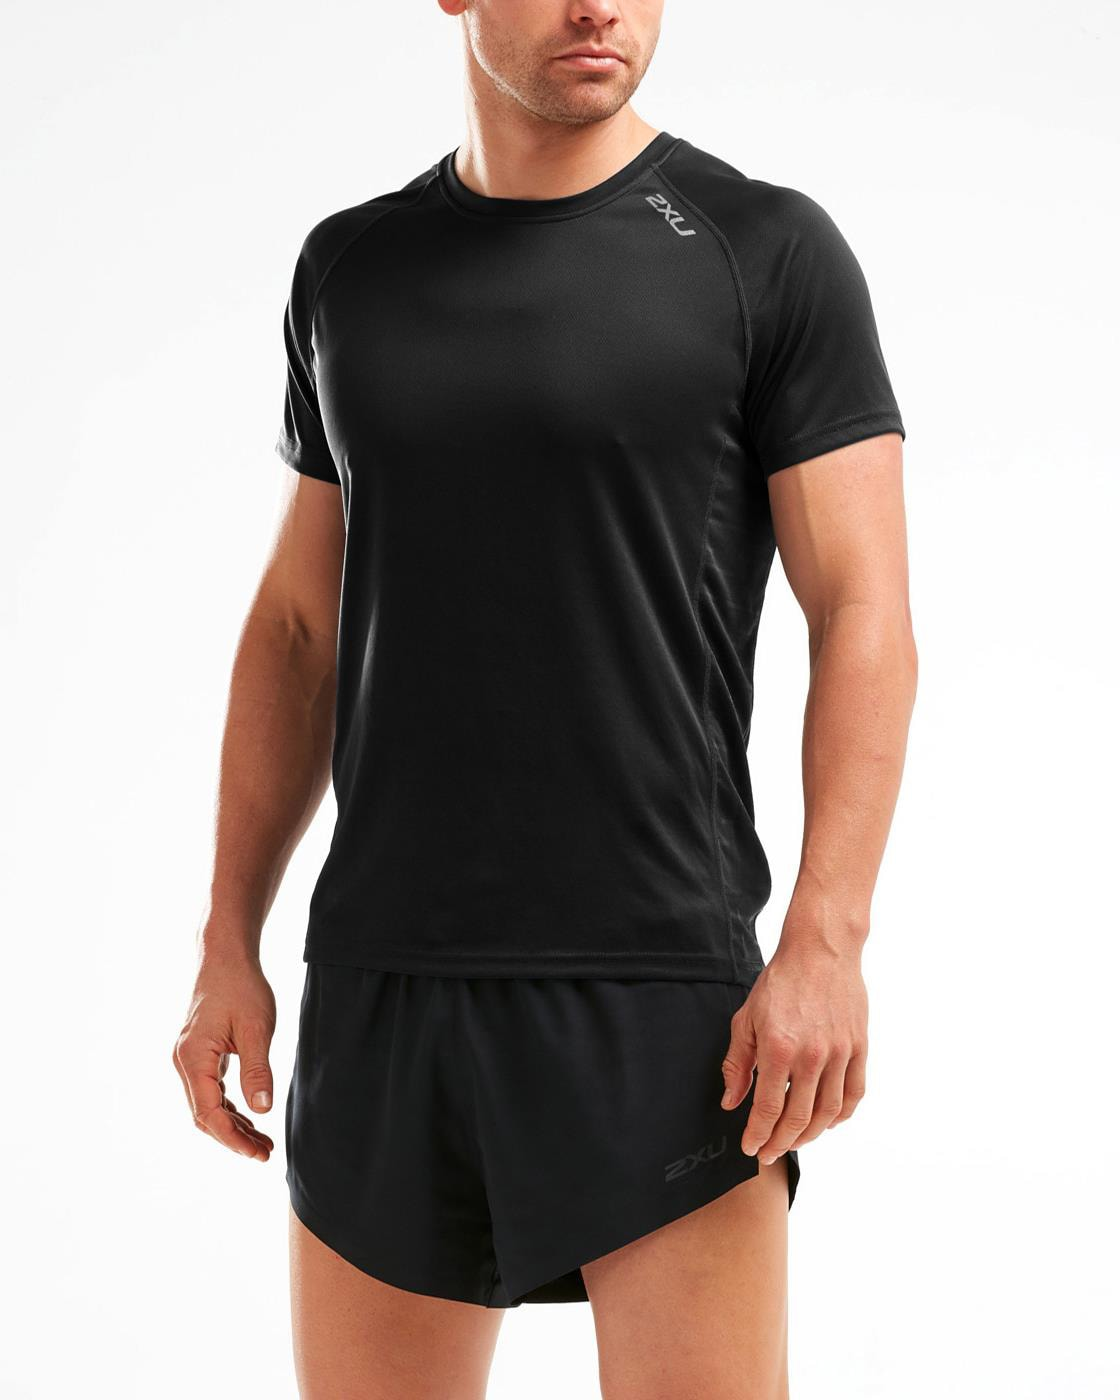 WEB_Image 2XU X-VENT Short-Sleeve Tee Herre mr5636a_blk-blk-355829974